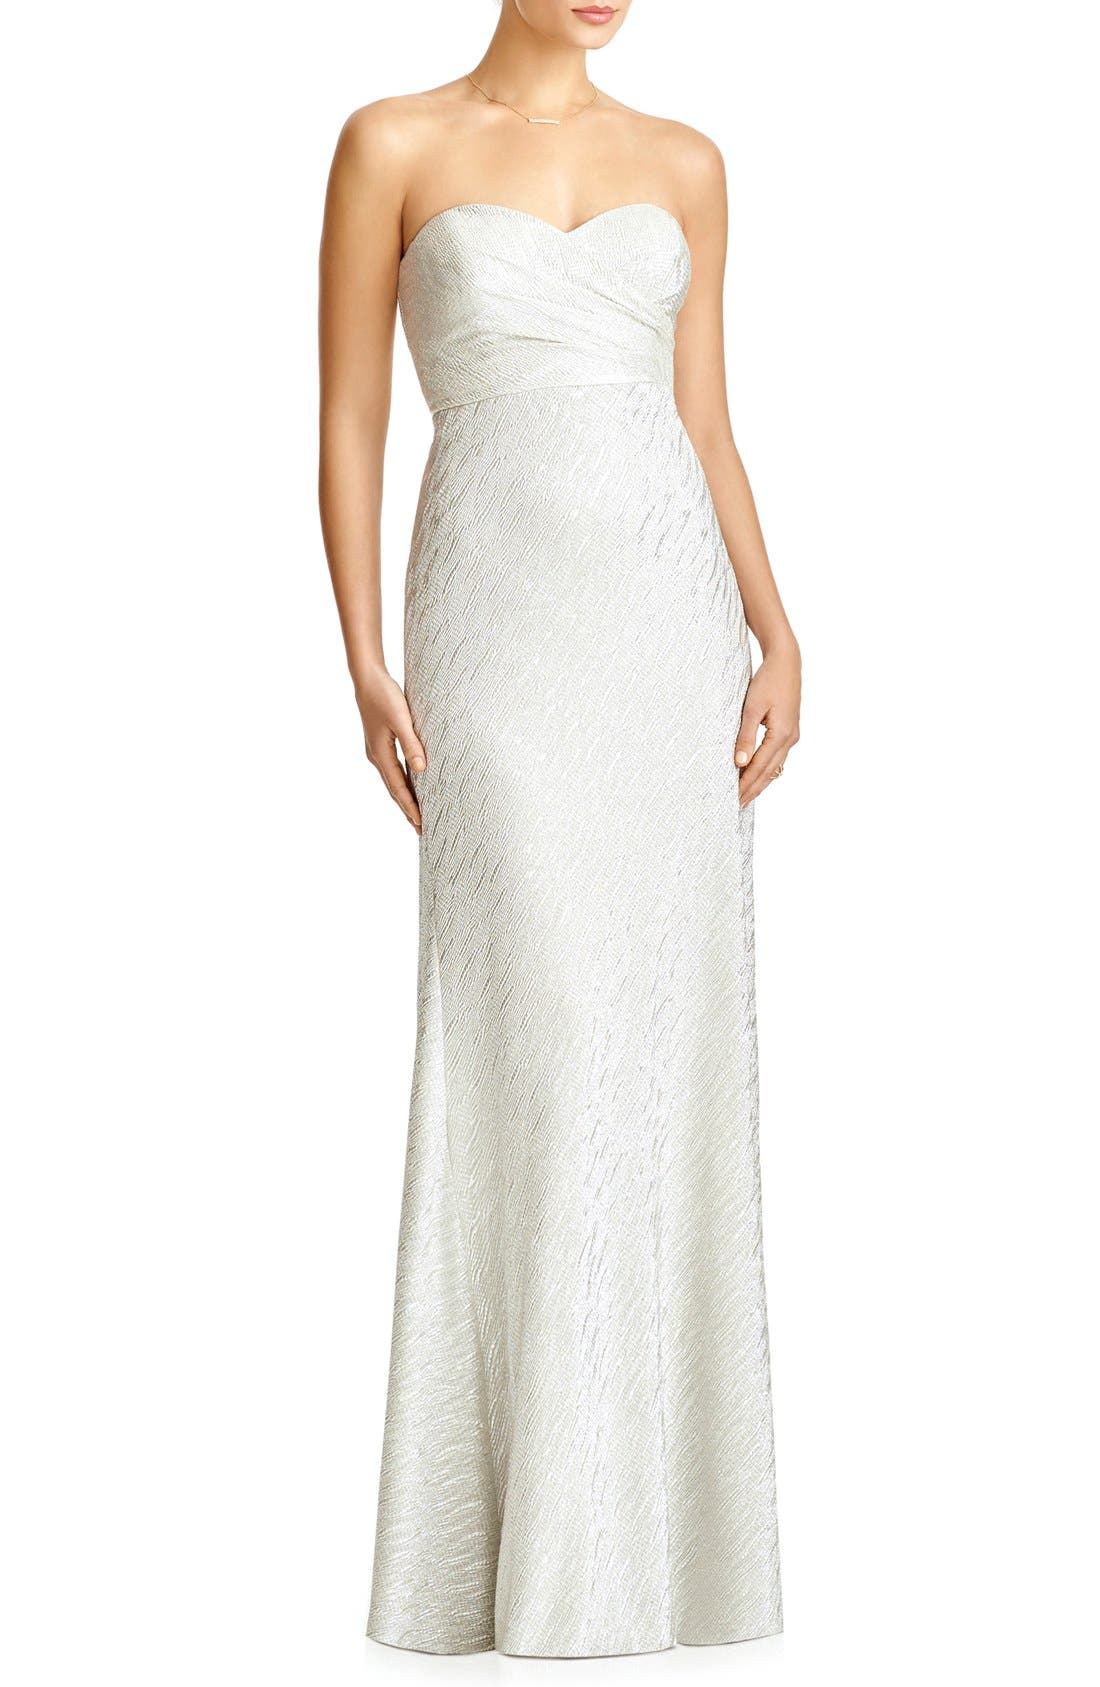 'Soho' Metallic Strapless Empire Waist Gown,                             Main thumbnail 1, color,                             CHAMPAGNE SILVER